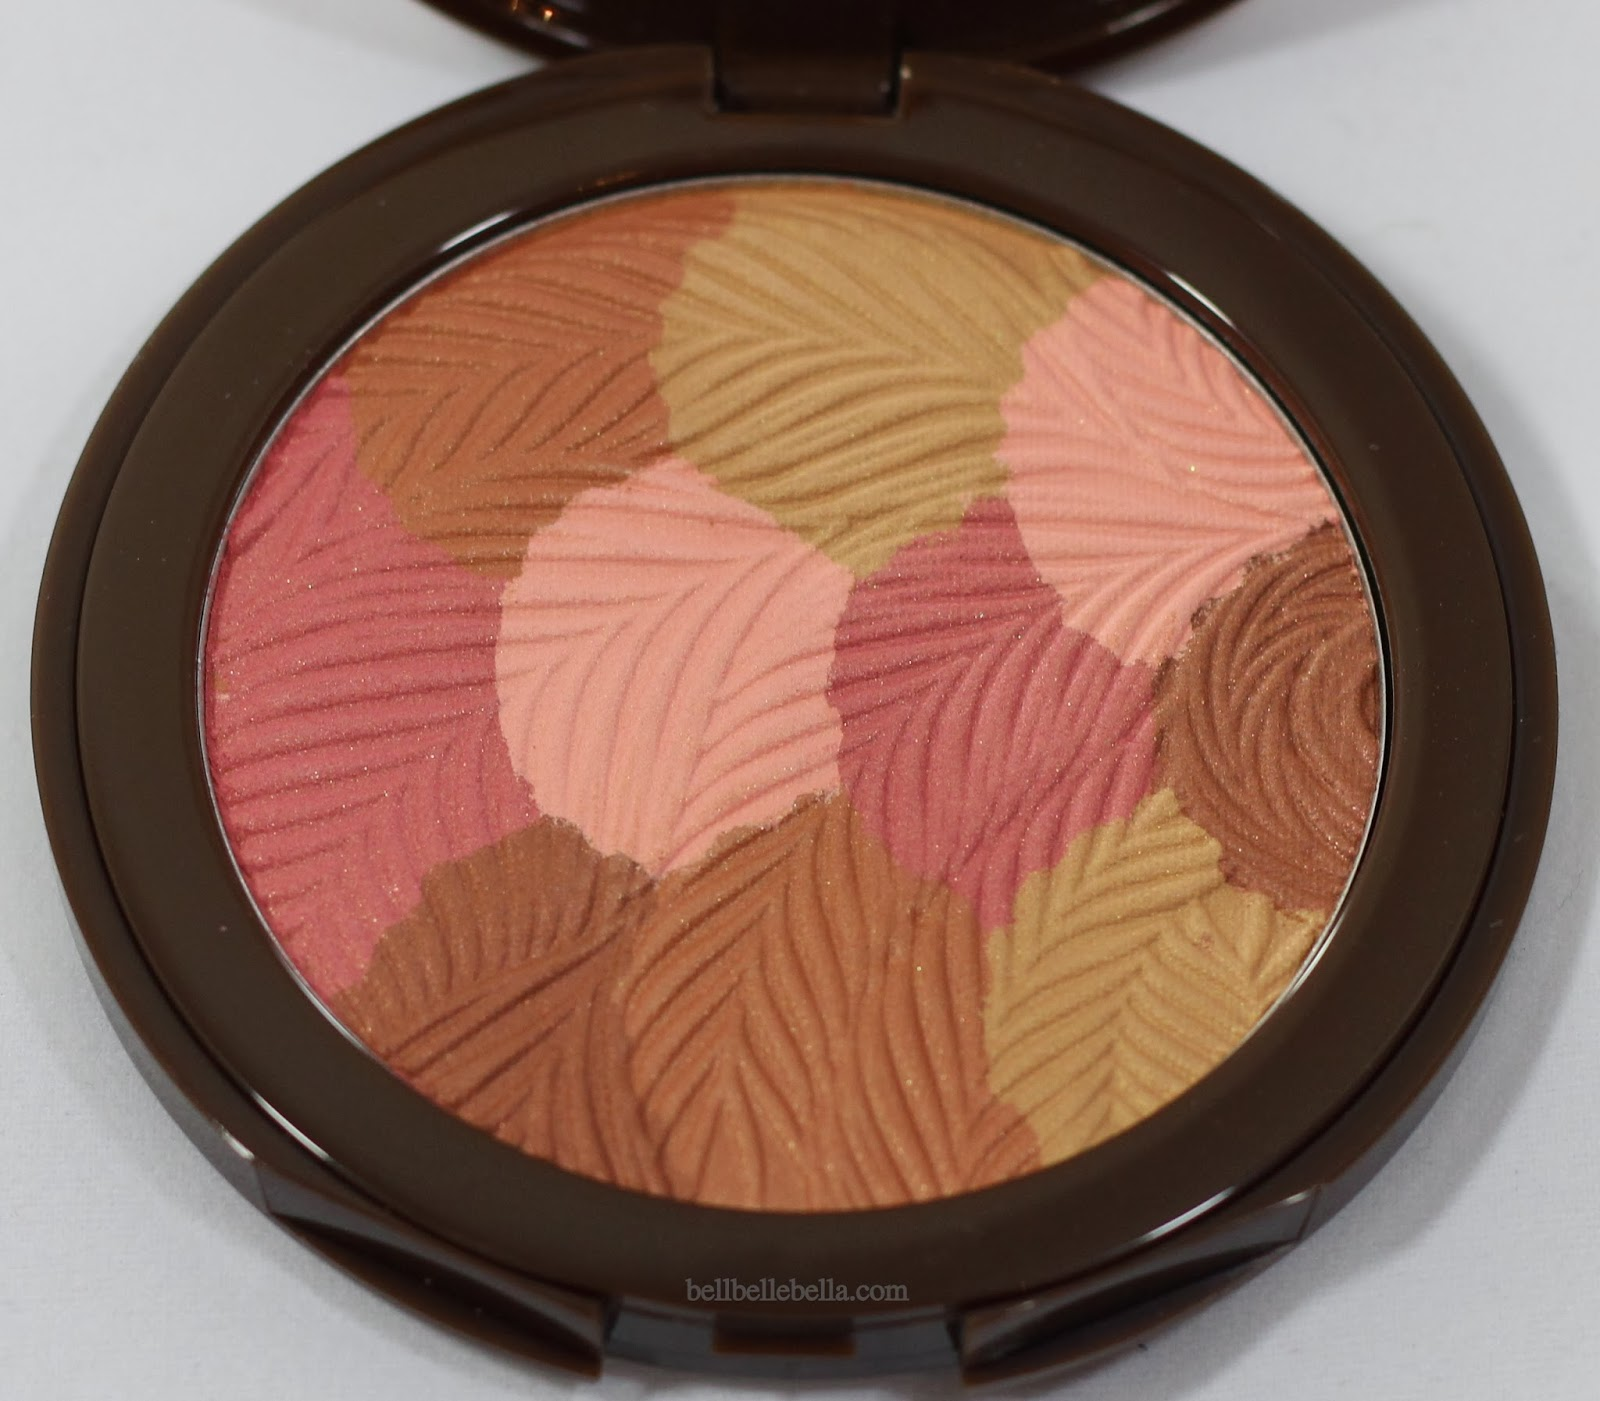 Tarte Amazonian Clay Bronzer Blush in Pink Bronze